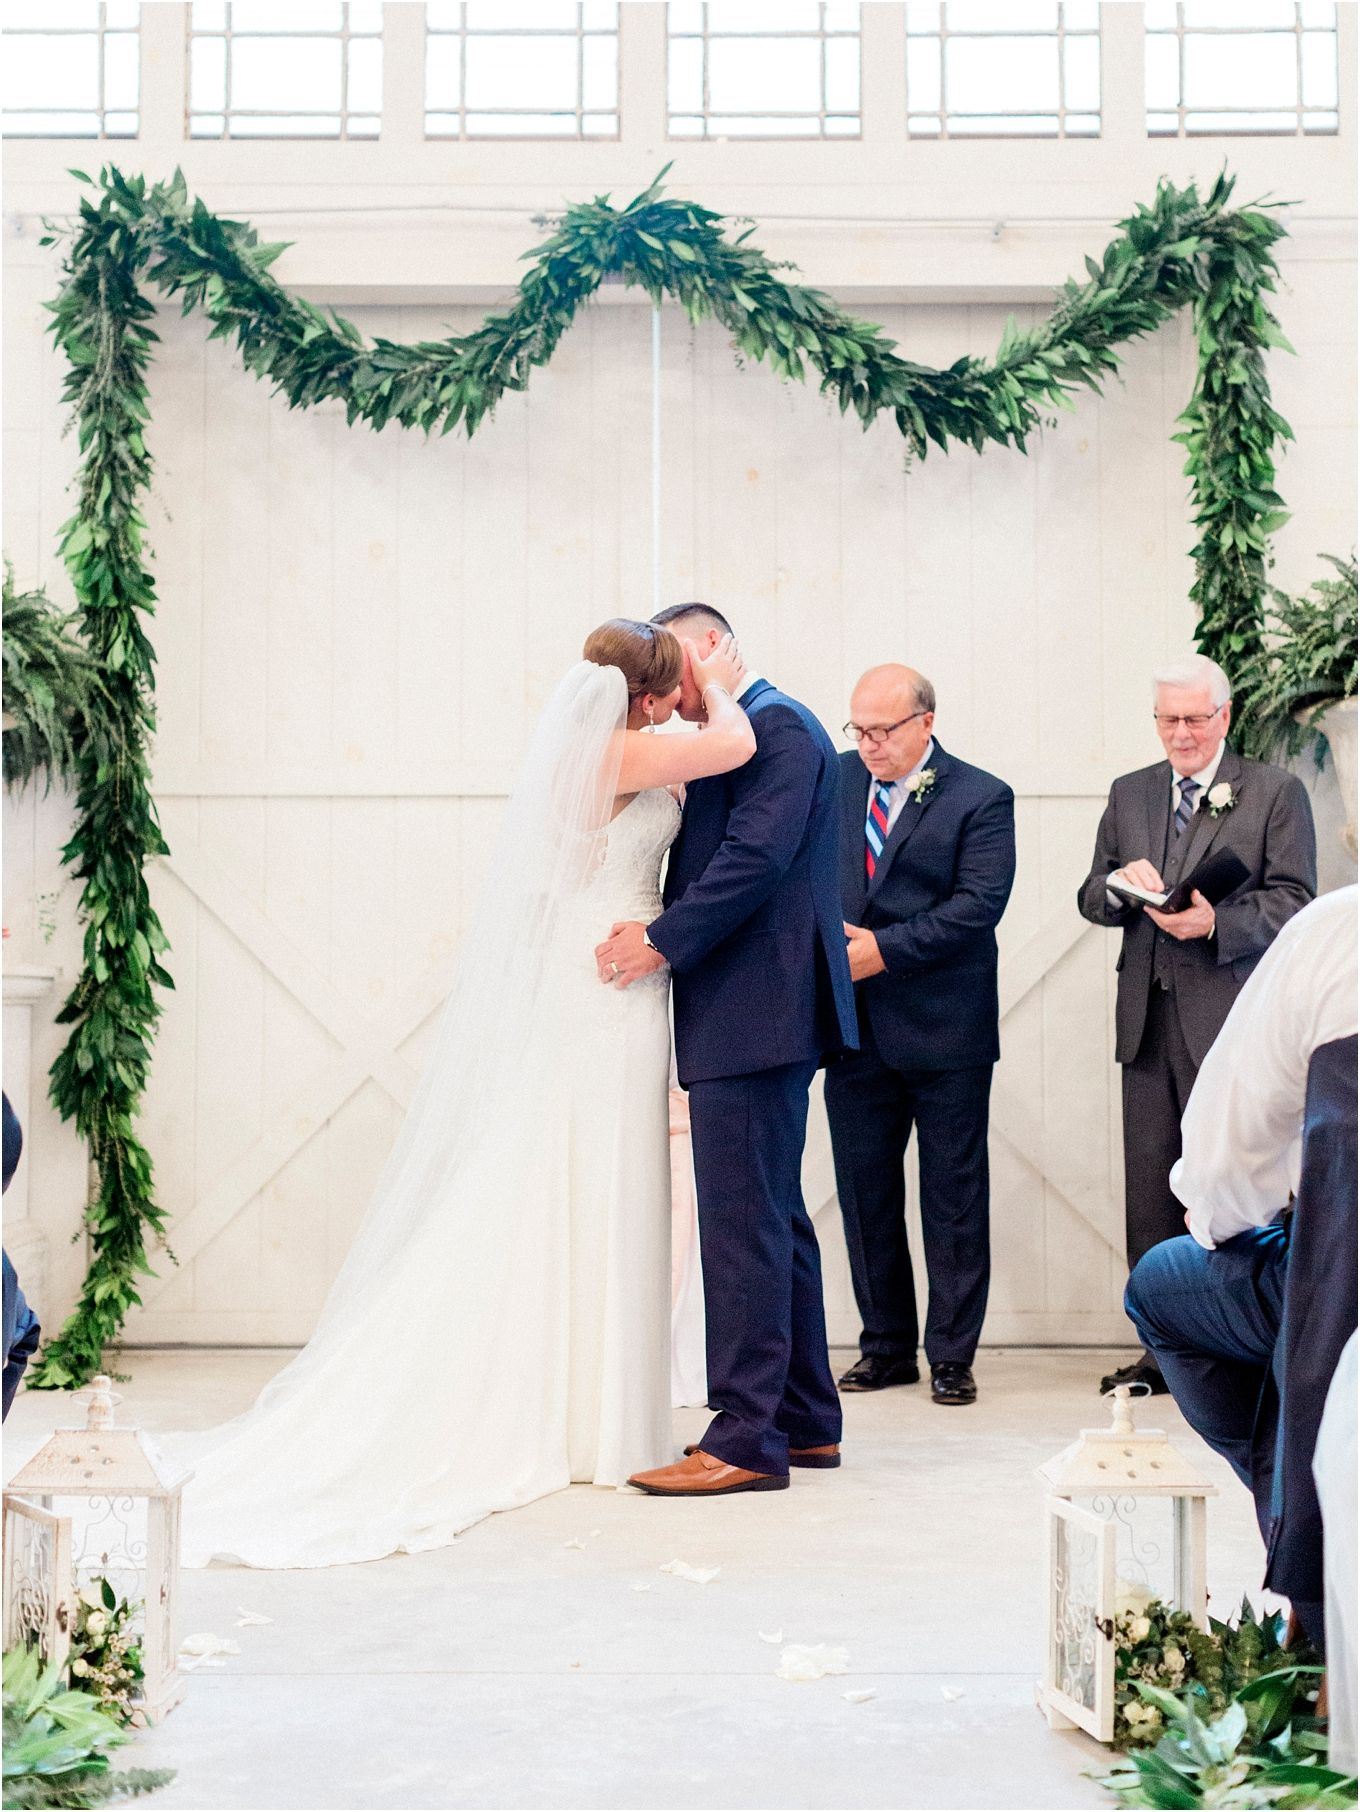 Wedding decorations rental october 2018 Elegant Blush and Navy Wedding at Chandler Oaks Barn in St